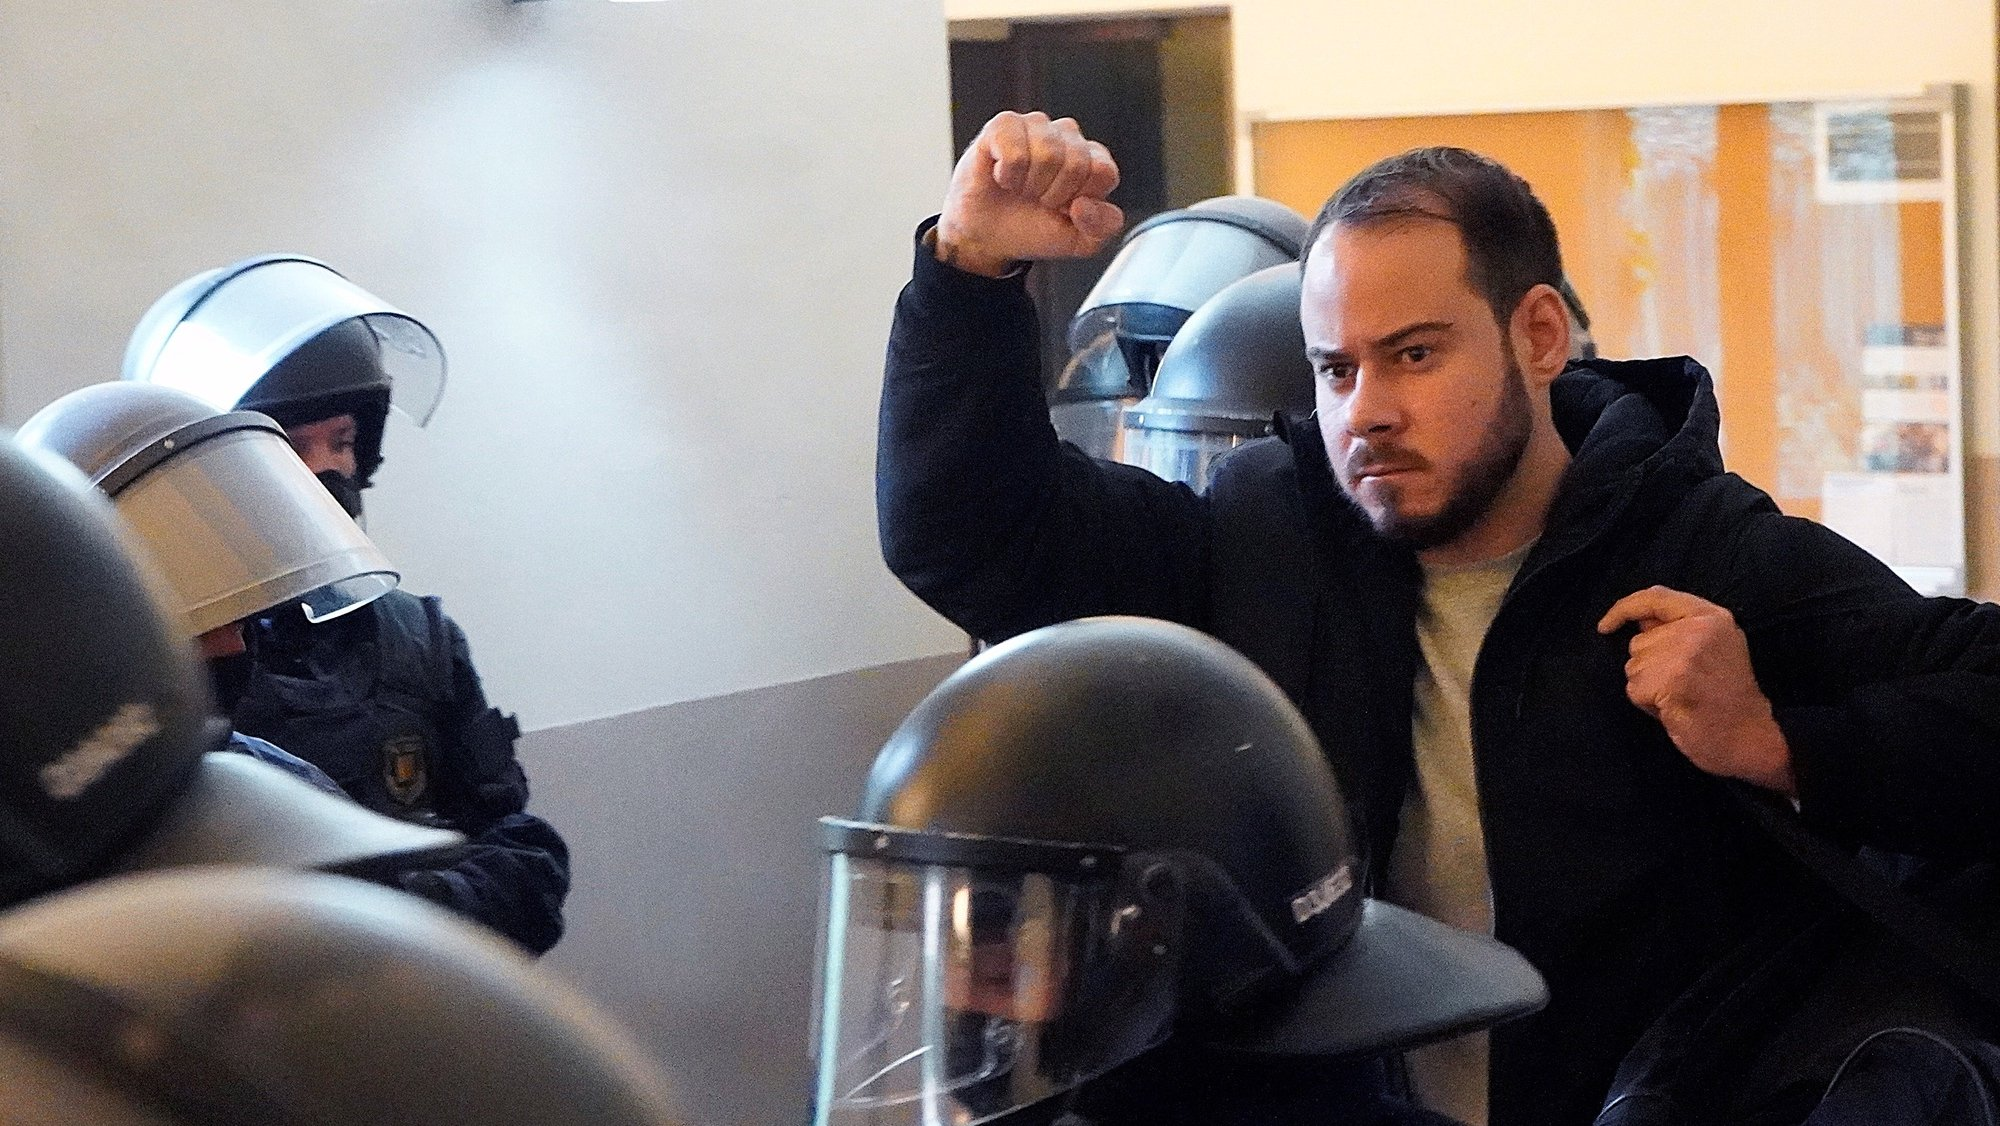 epa09015946 Spanish rapper Pablo Hasel raises his fist as he is arrested by Mossos d'Esquadra police inside Lleida University after the deadline of his voluntary entry to prison has passed, in Lleida, Catalonia, Spain, 16 February 2021. Hasel was sentenced to a nine months in jail late January after the Supreme Court found him guilty of glorifying terrorism and insulting the crown and state institutions, triggering rallies of Rights Associations demanding free speech and for the government political parties (Unidas Podemos and Socialist Partty) to reform the criminal code for crimes involving freedom of expression.  EPA/Paul de la Calle